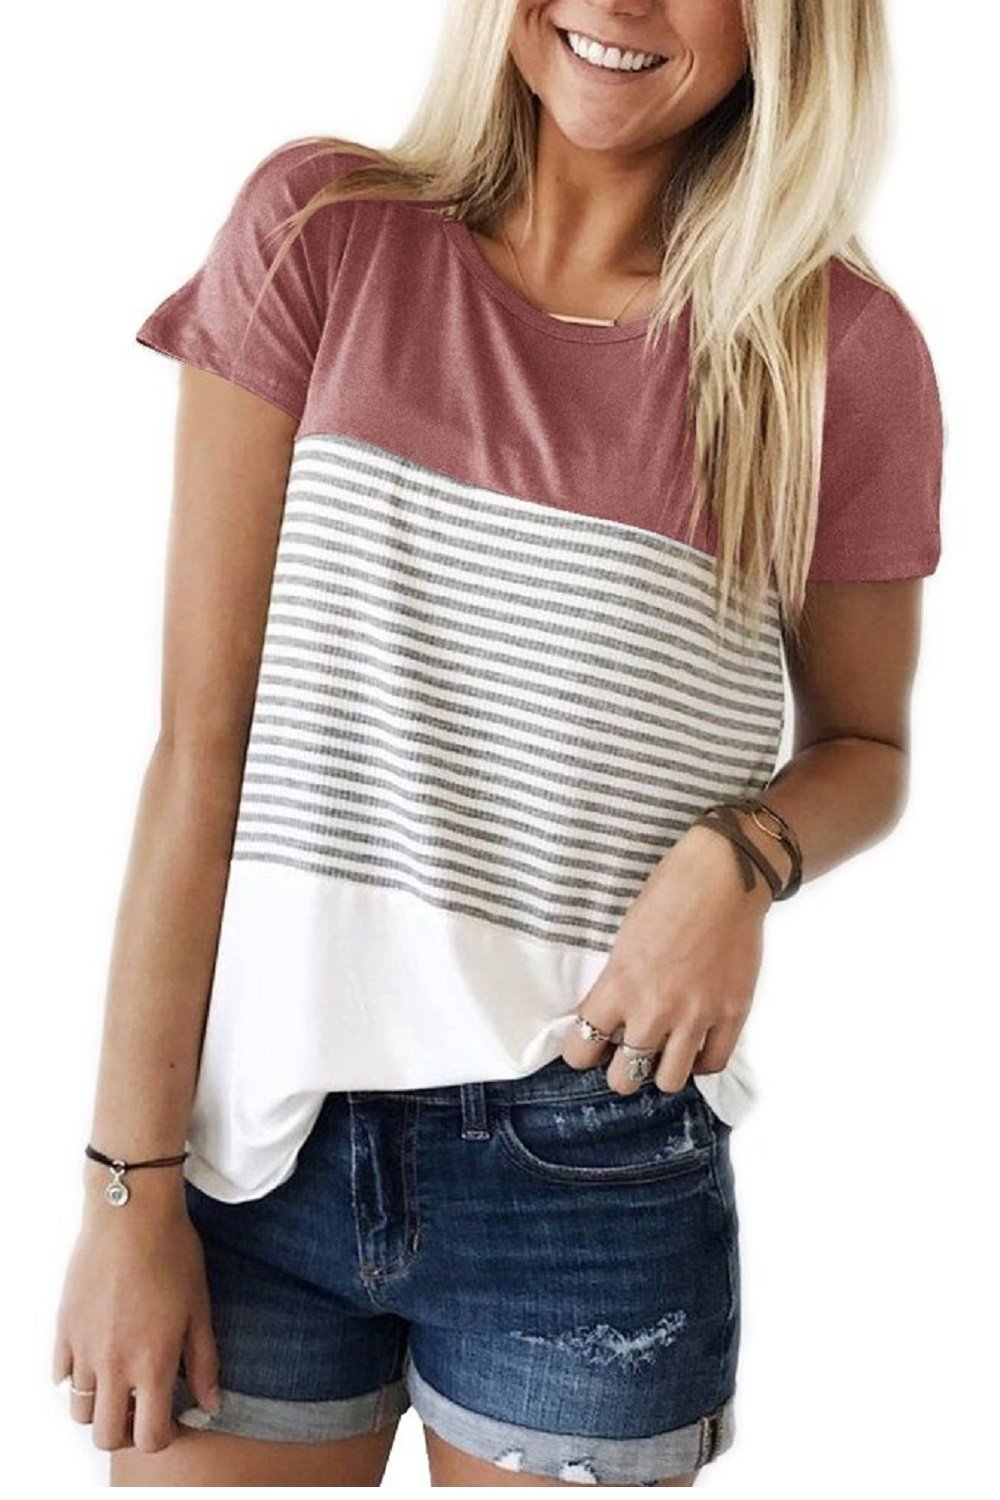 Smalovy T Shirts for Women Short Sleeve Tops and Blouses Striped Tees Red S